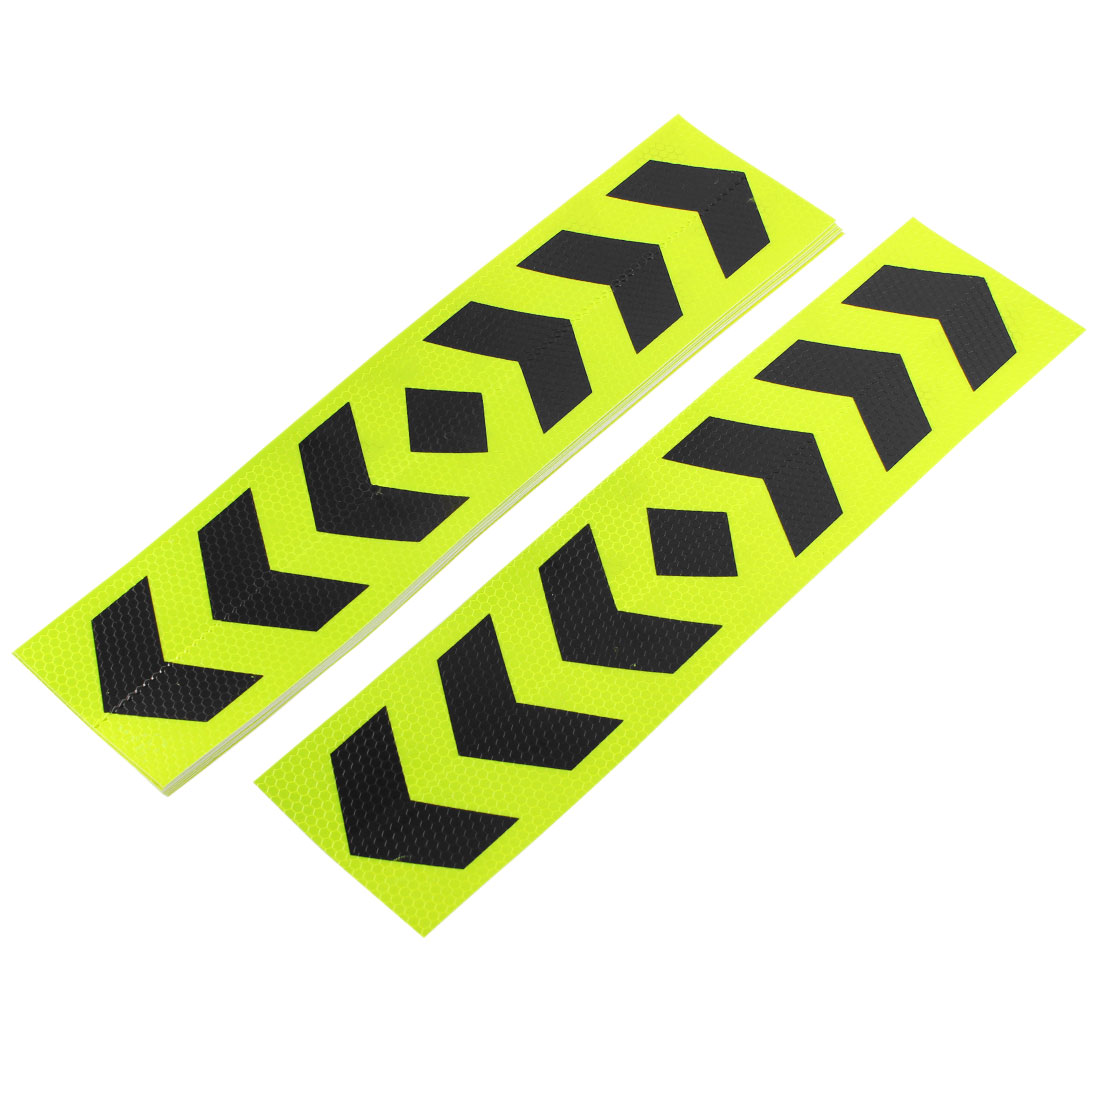 10 x Car Truck Trailer Reflective Safety Arrows Pattern Tape Sticker Shiny Yellow Black